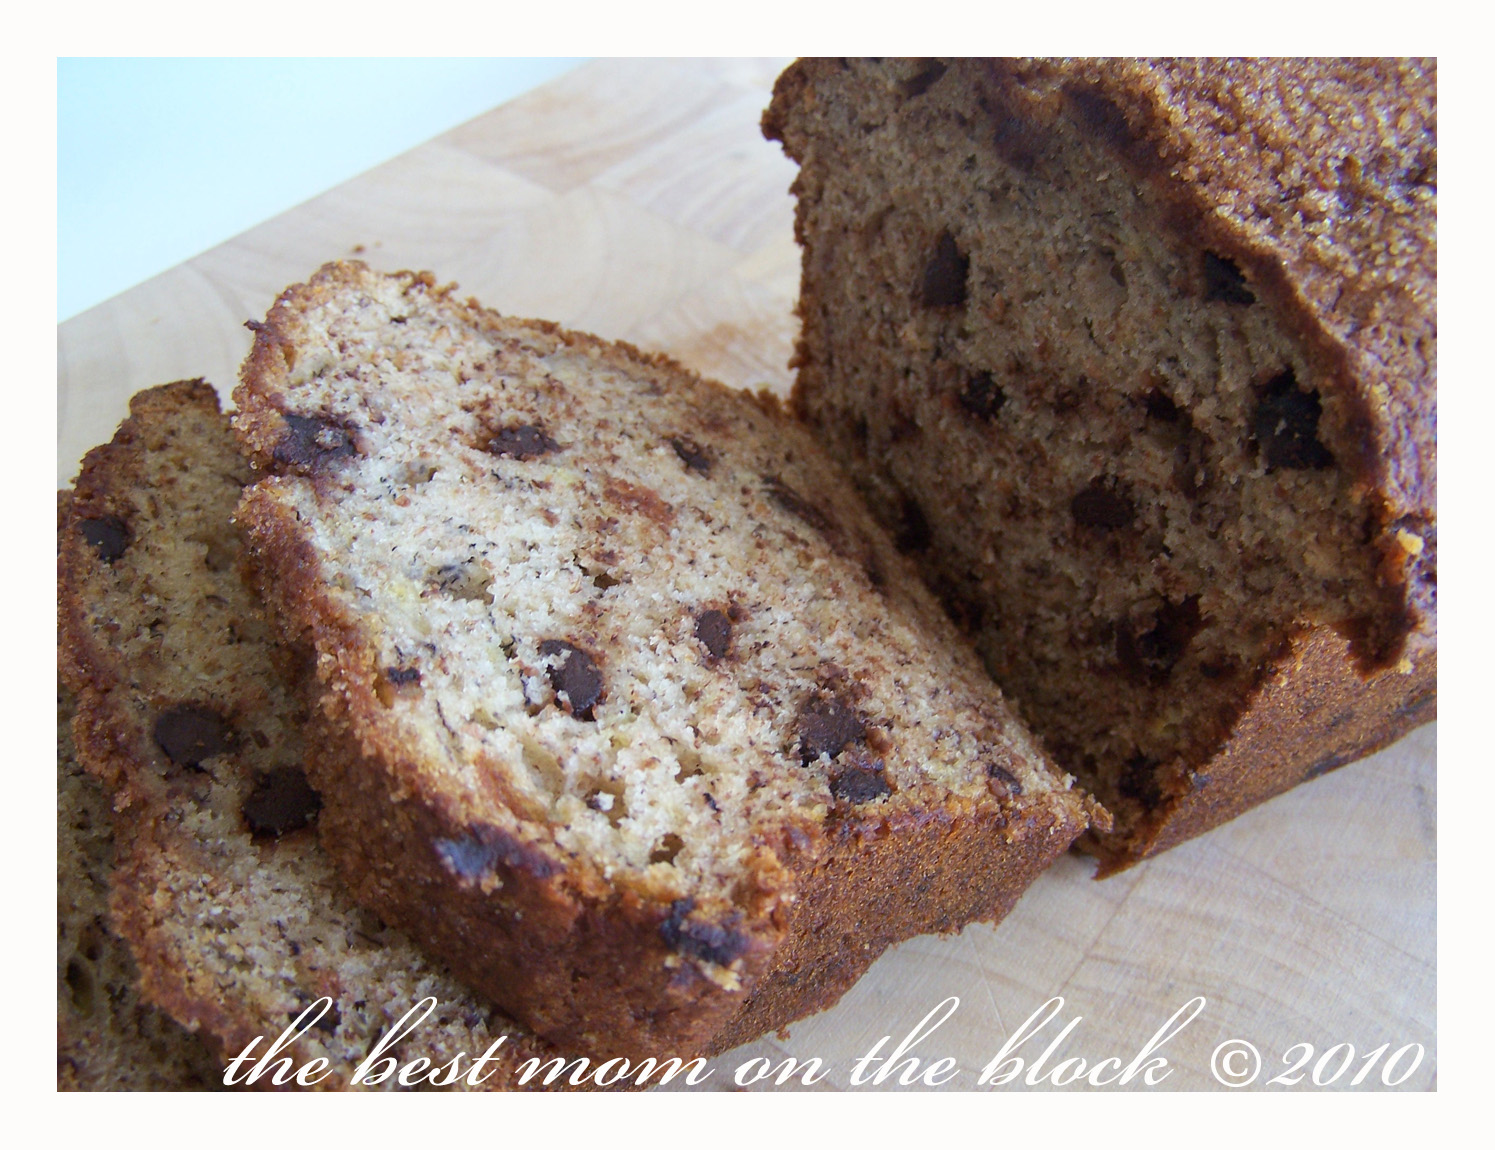 The Best Mom on the Block: Granny's Banana Bread (with a twist)